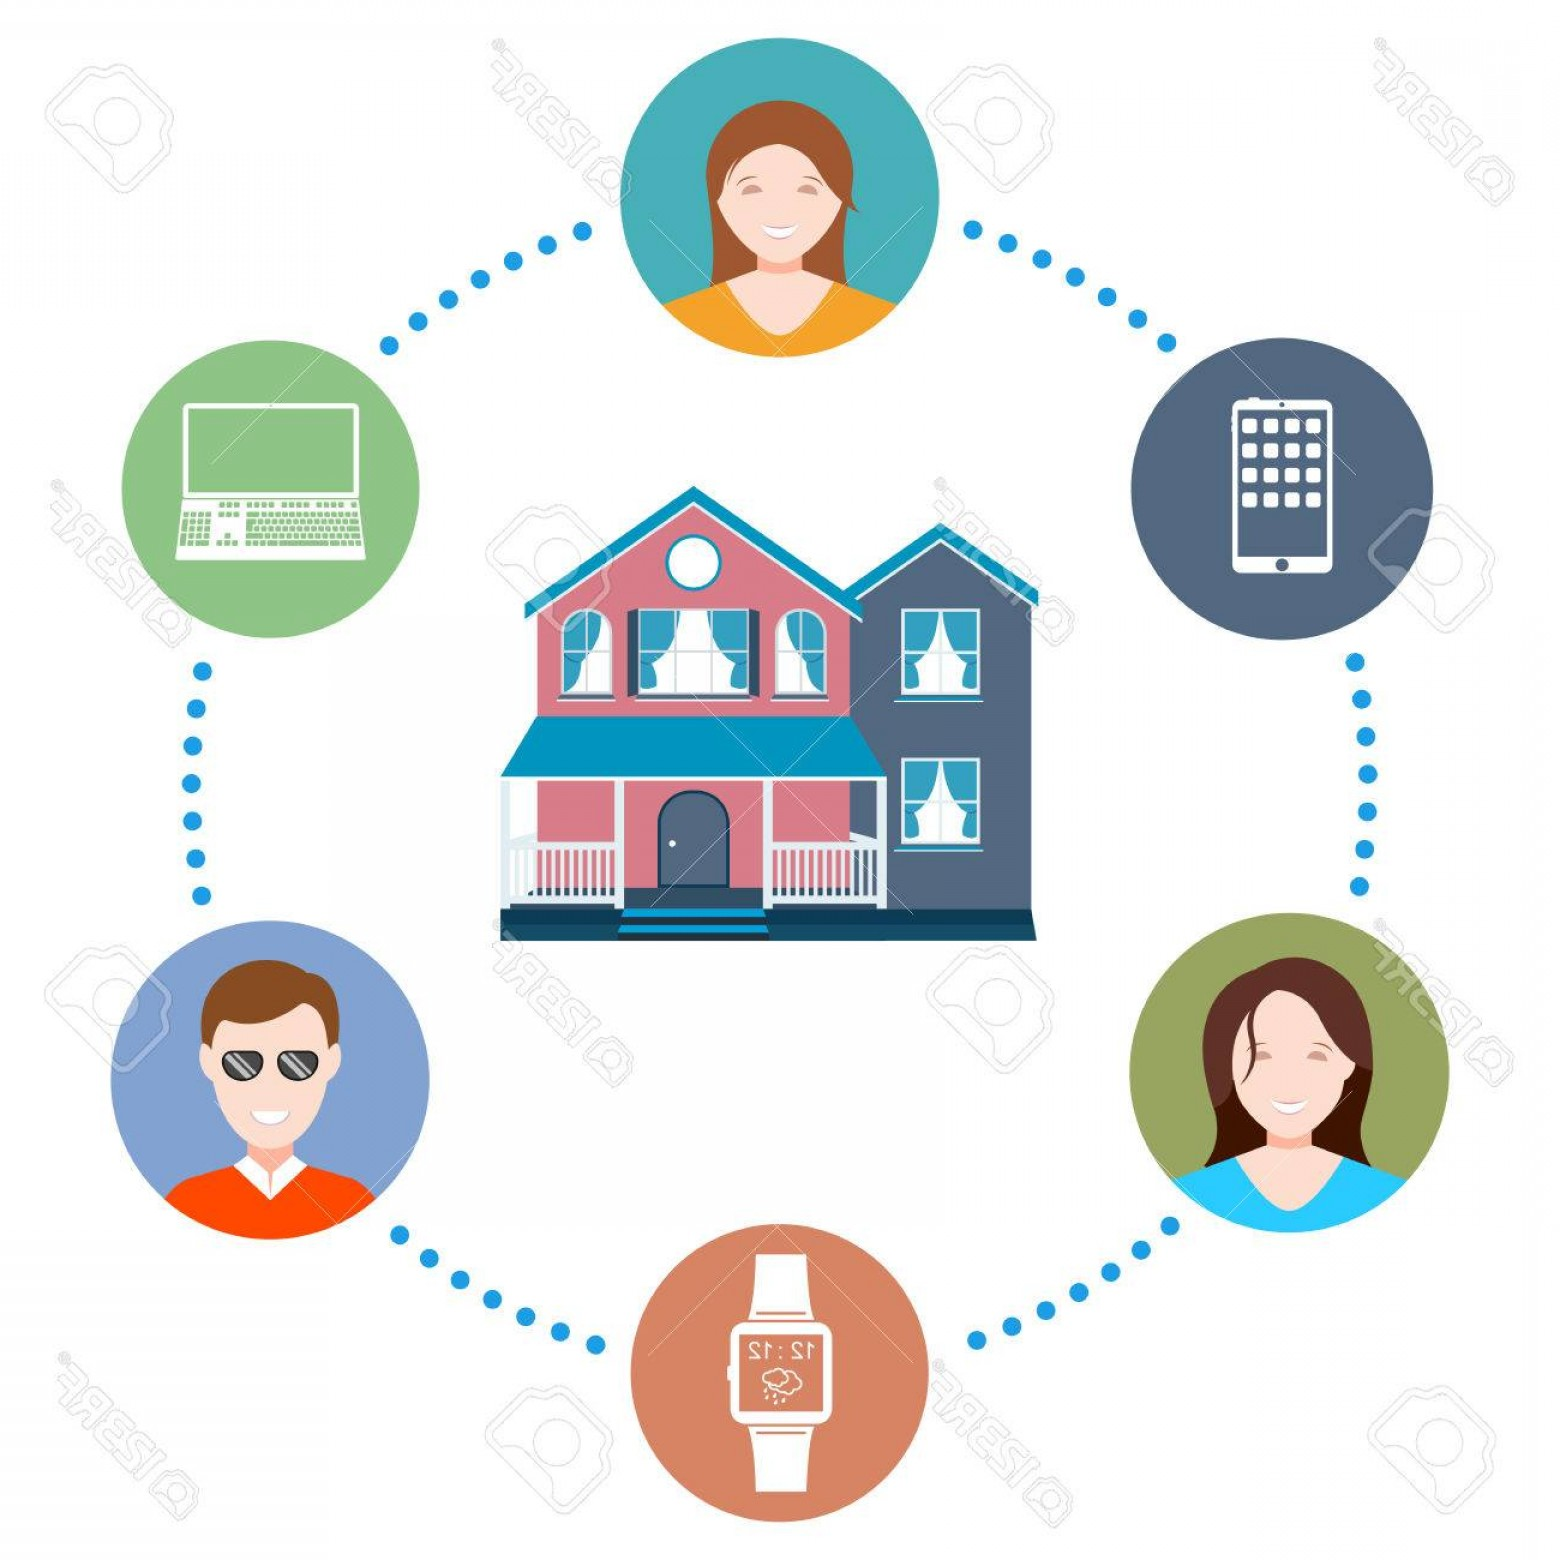 Smart Home Remote Vector: Photostock Vector Vector Illustration Of A Smart Home On White Isolated Background Modern Cottage With A Remote Contro